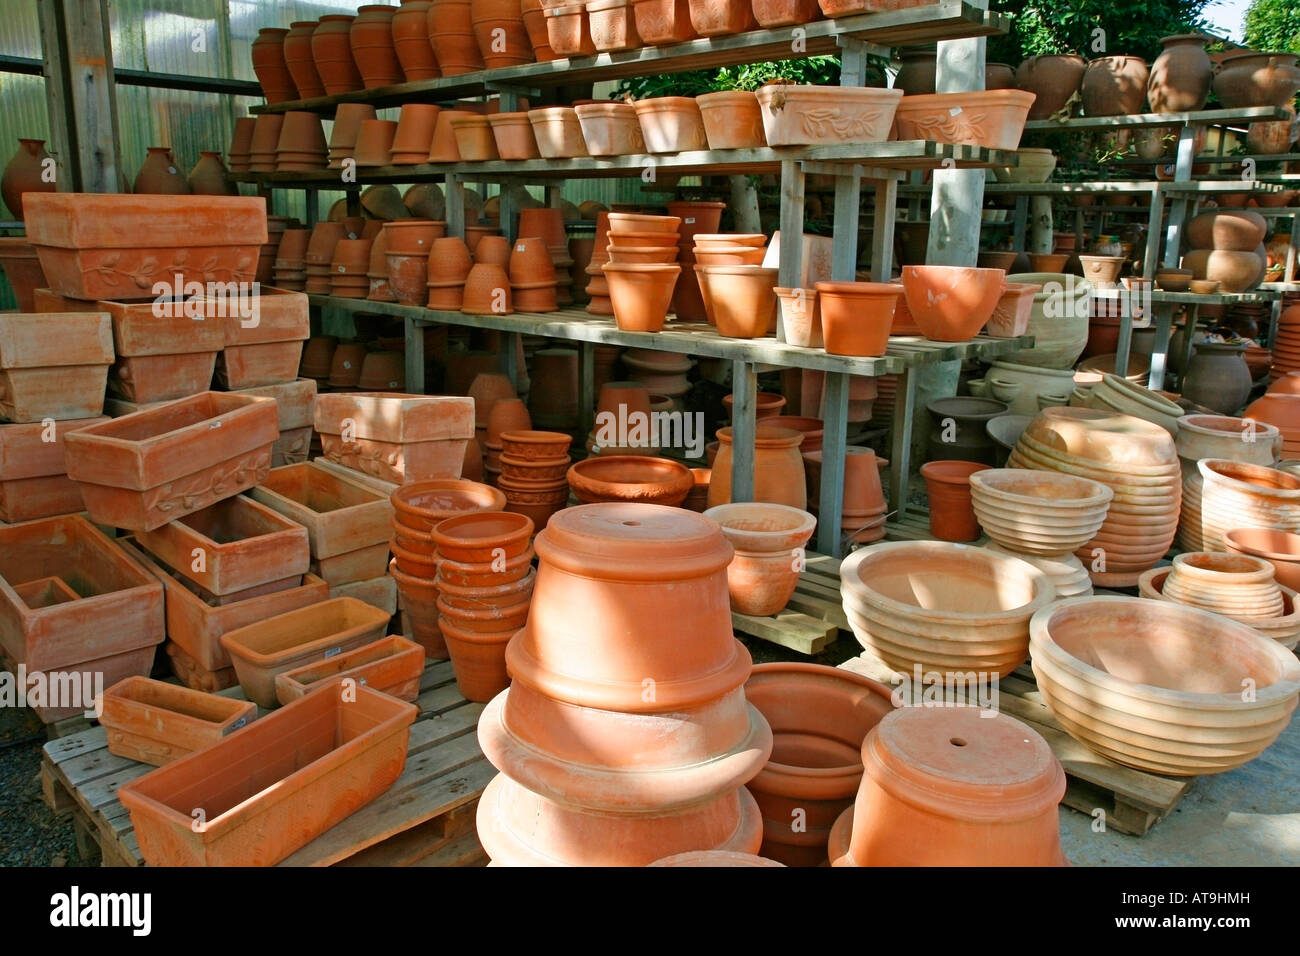 Display Of Terracotta Pots For Sale In Garden Center   Stock Image